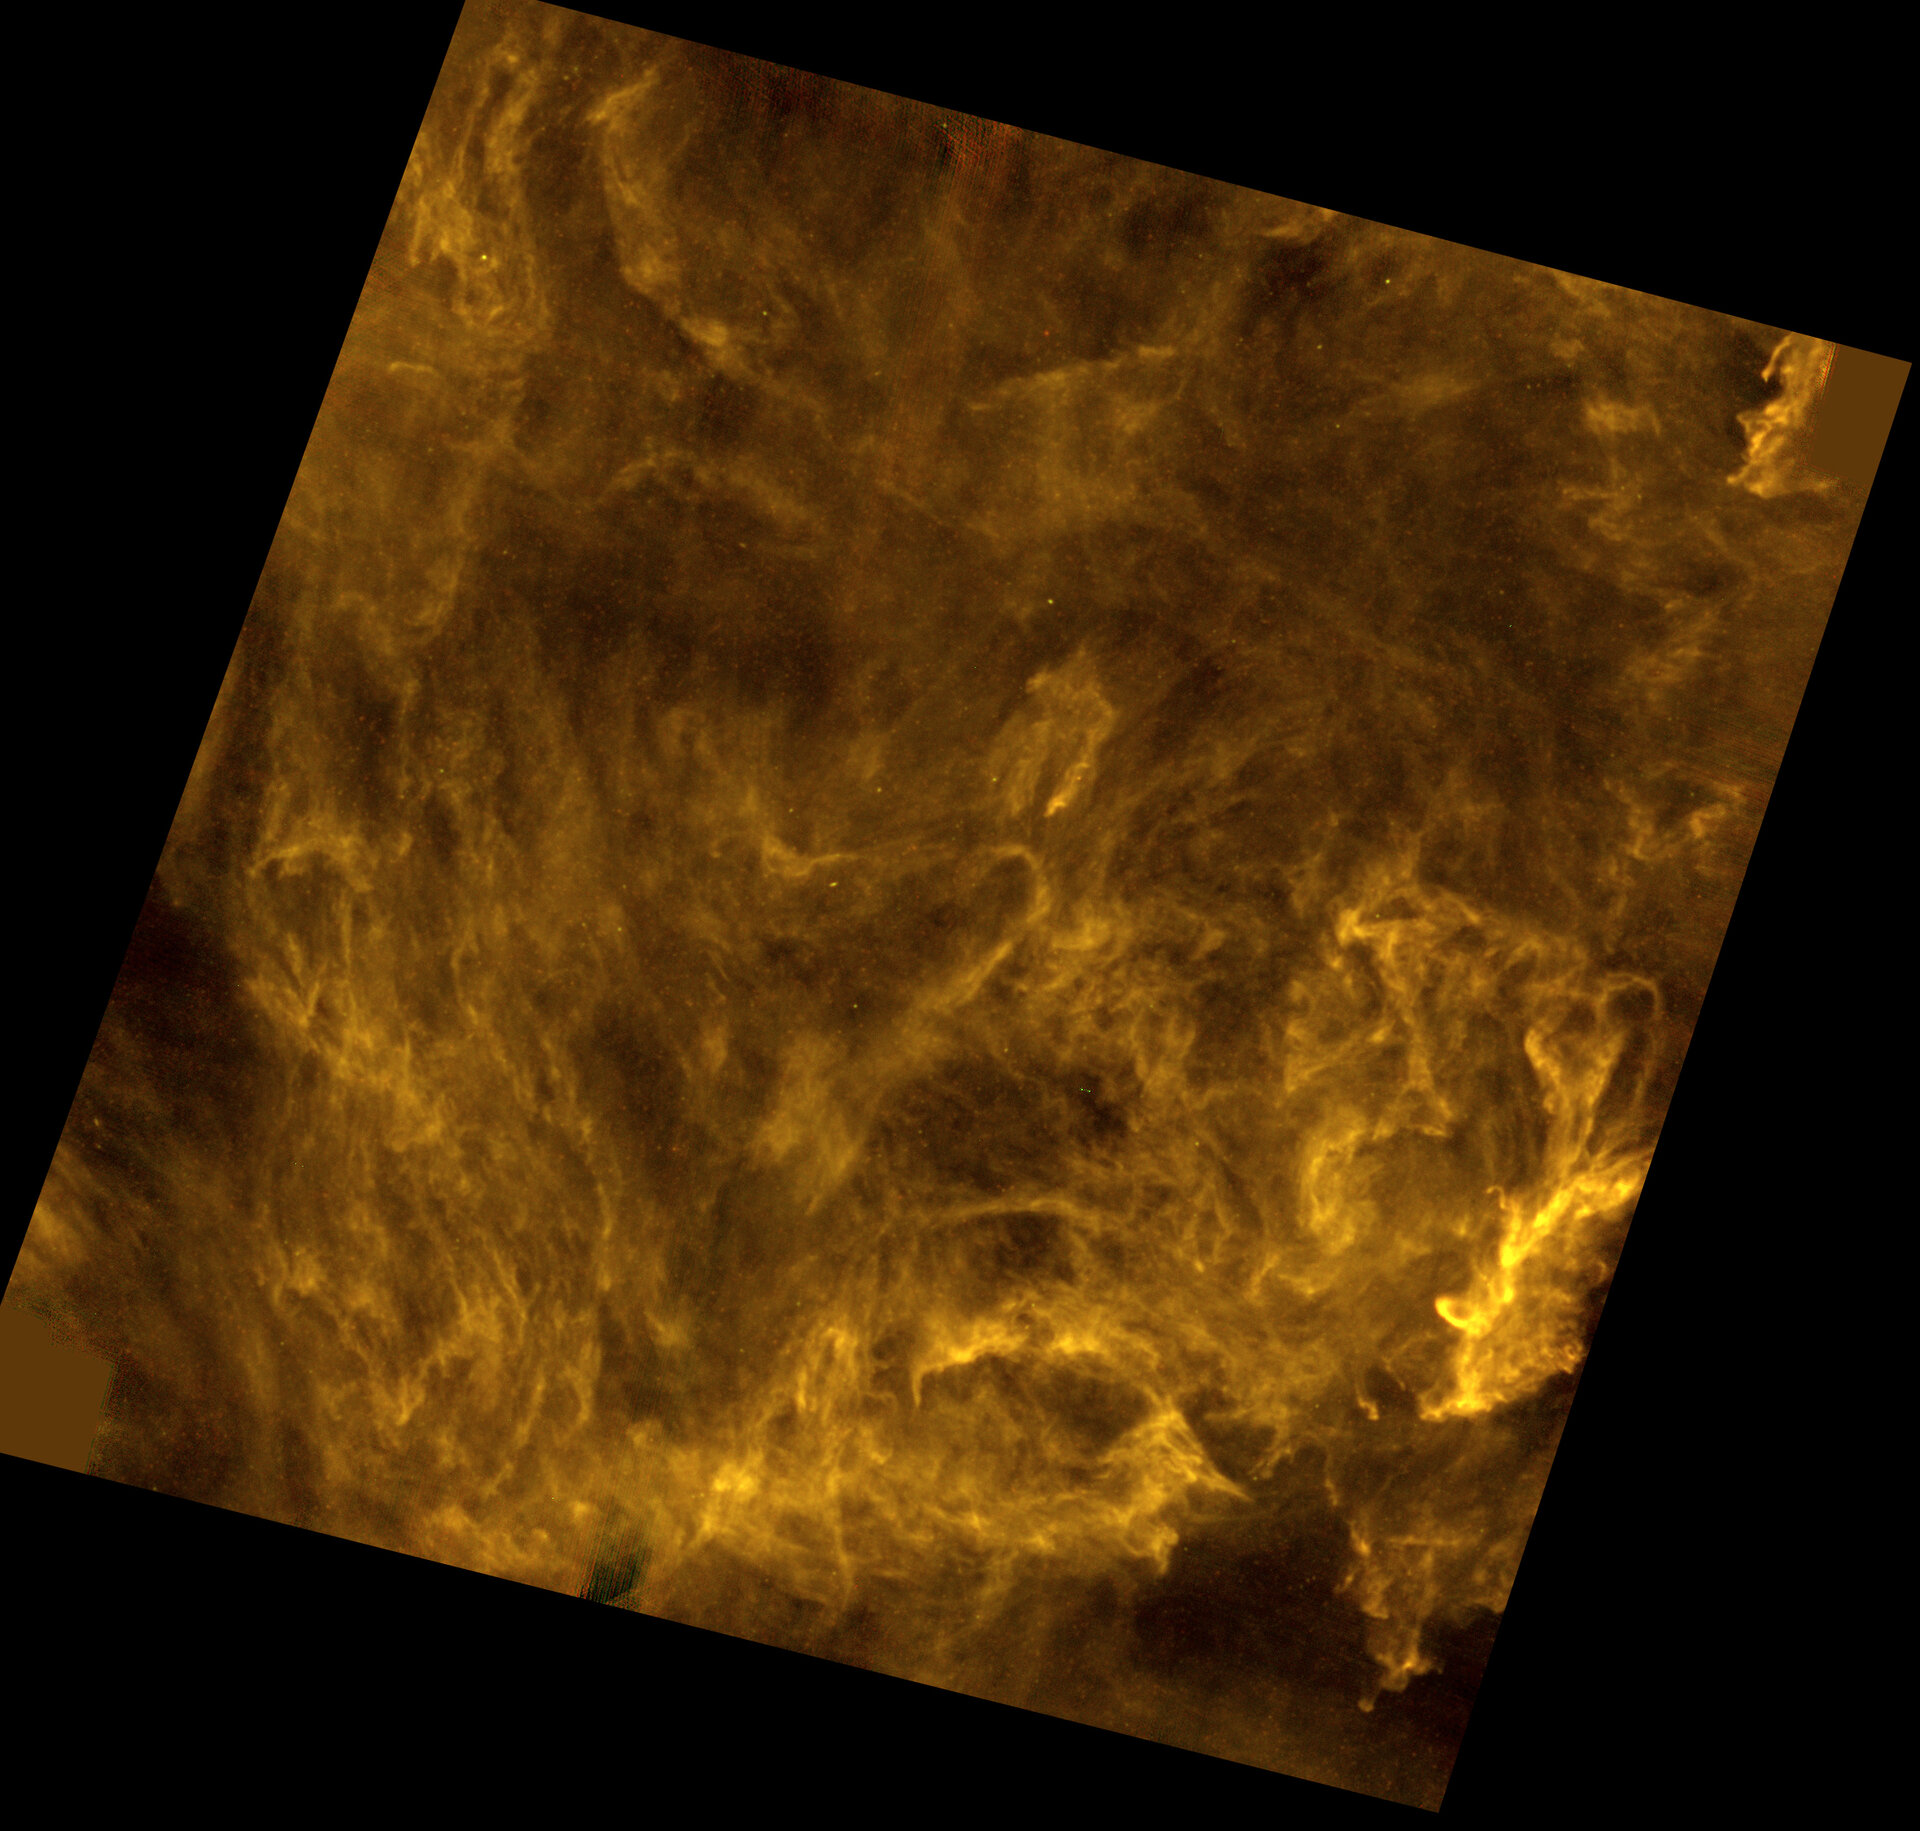 Interstellar filaments in the Polaris Flare